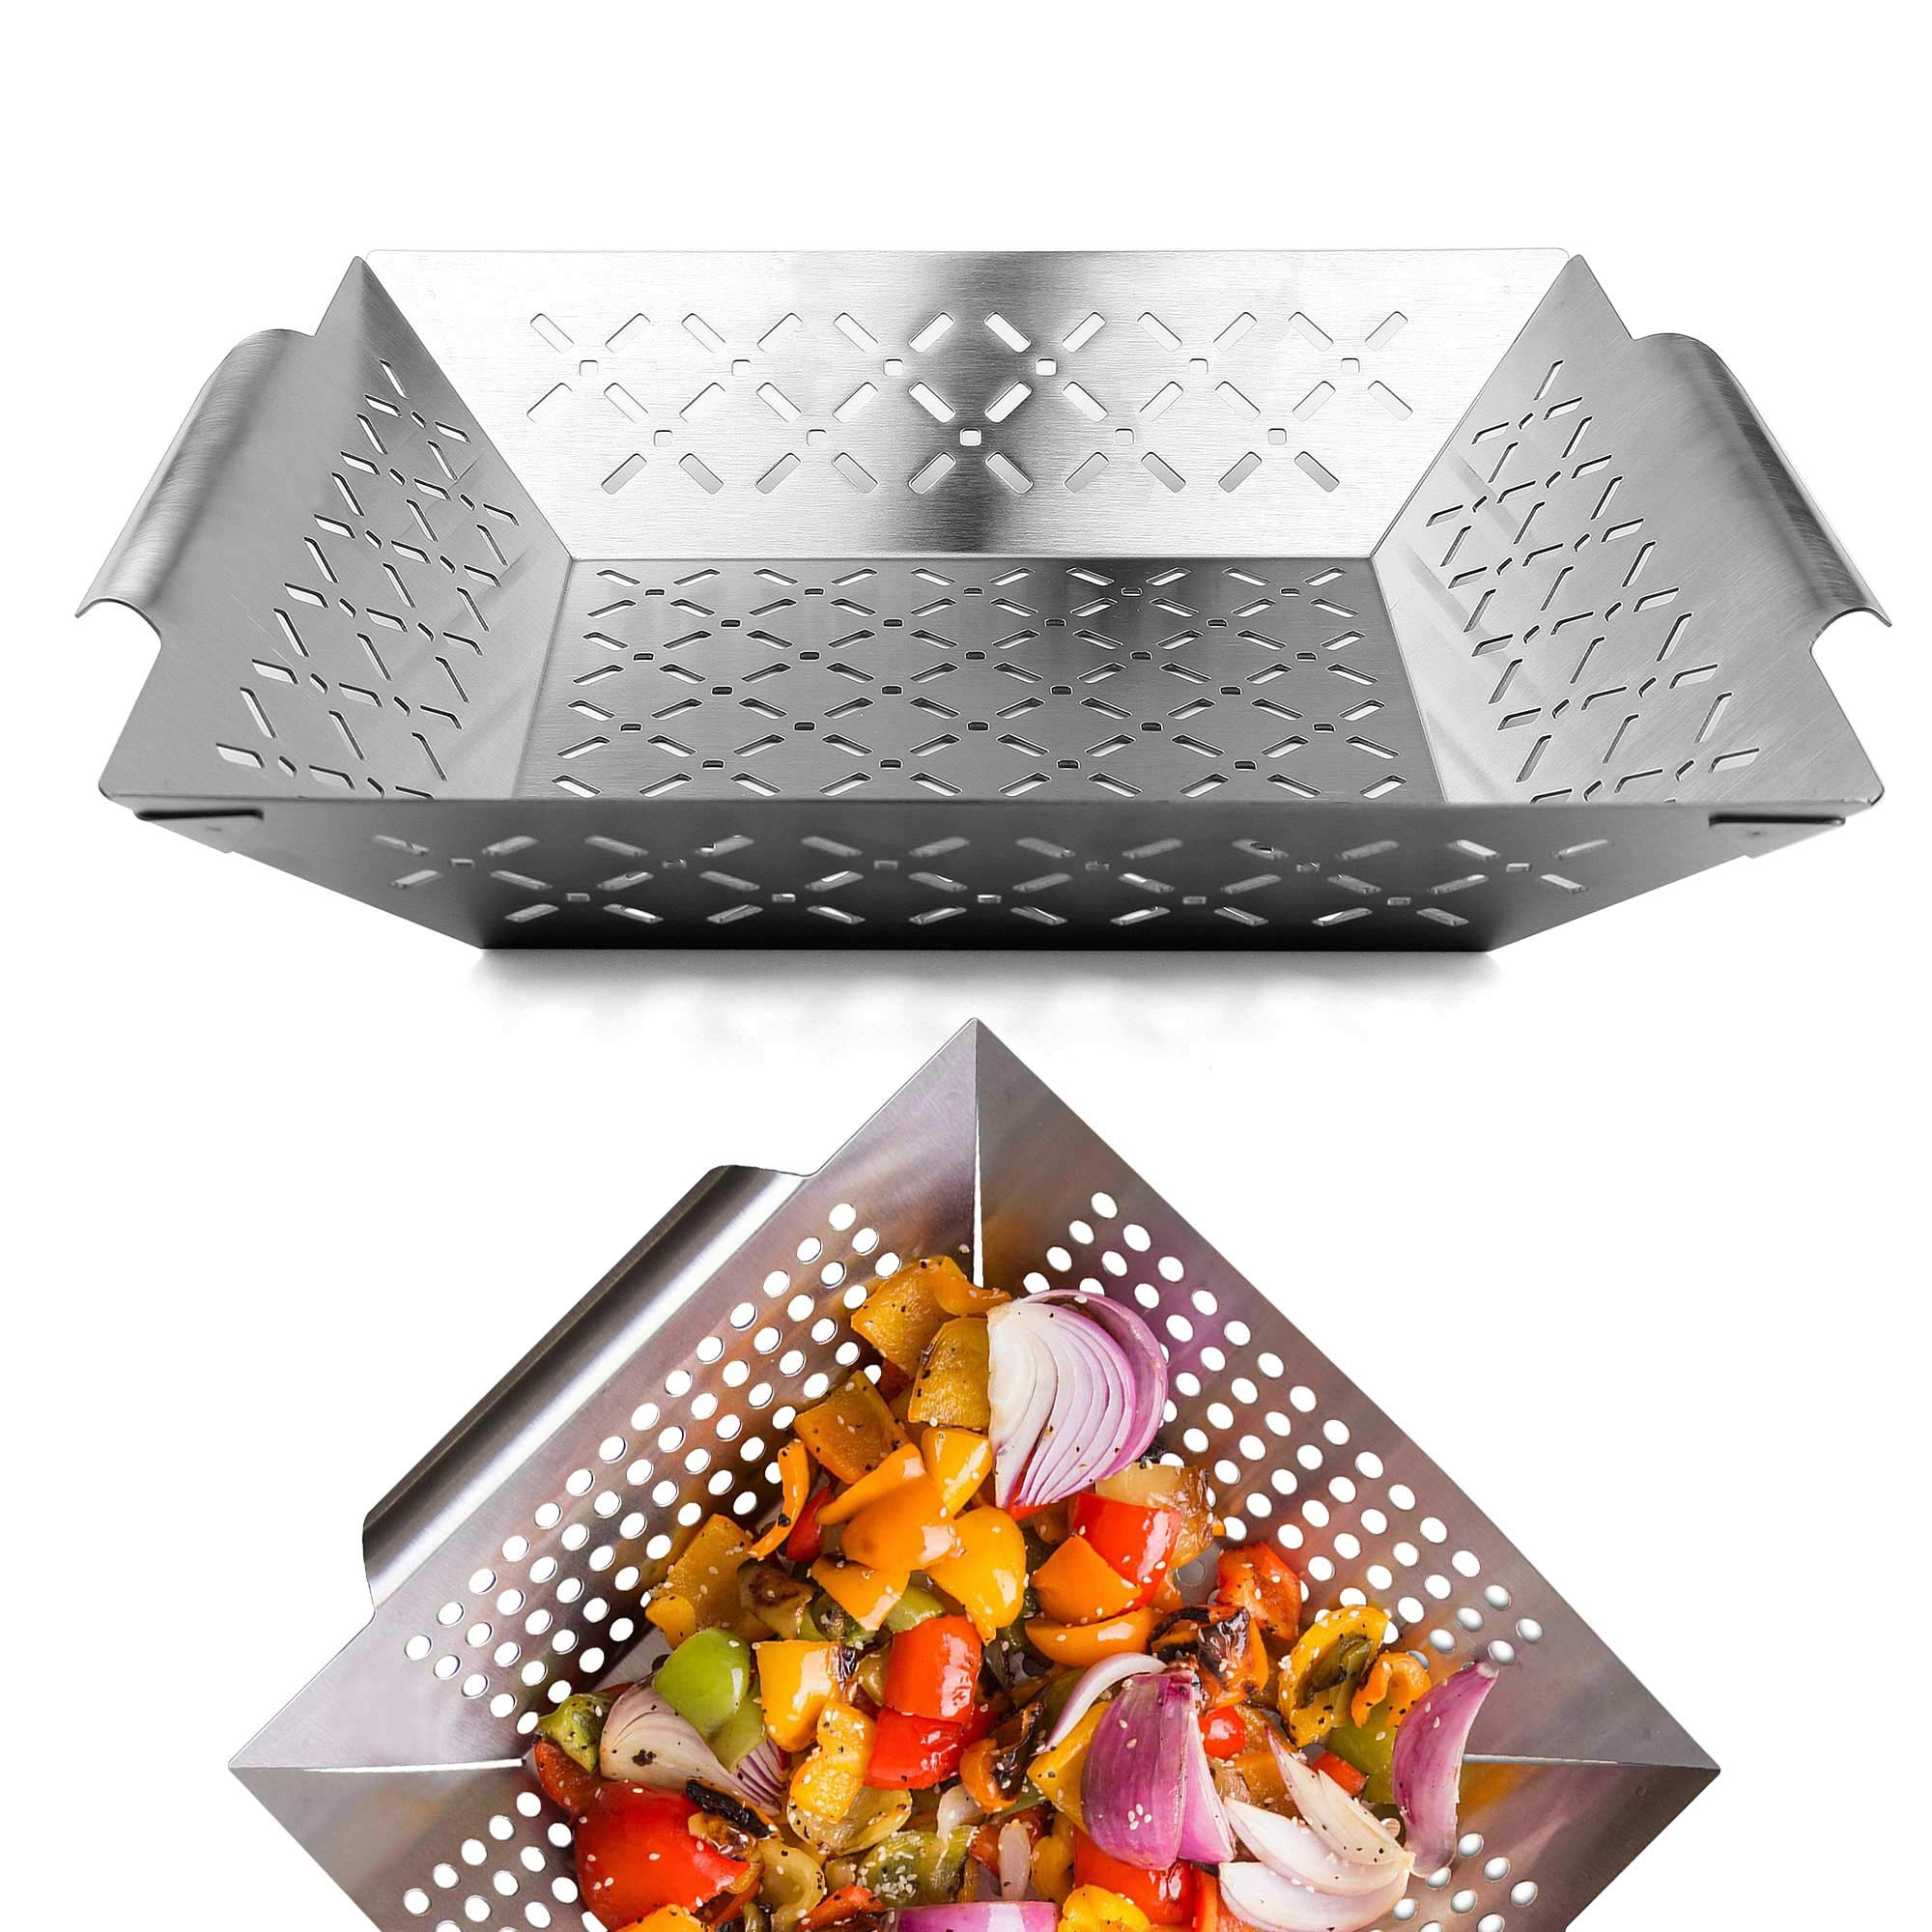 GRILLART Grill Basket - Large Grilling Basket for More Vegetables - Heavy Duty Stainless Steel Grilling Accessories Built to Last